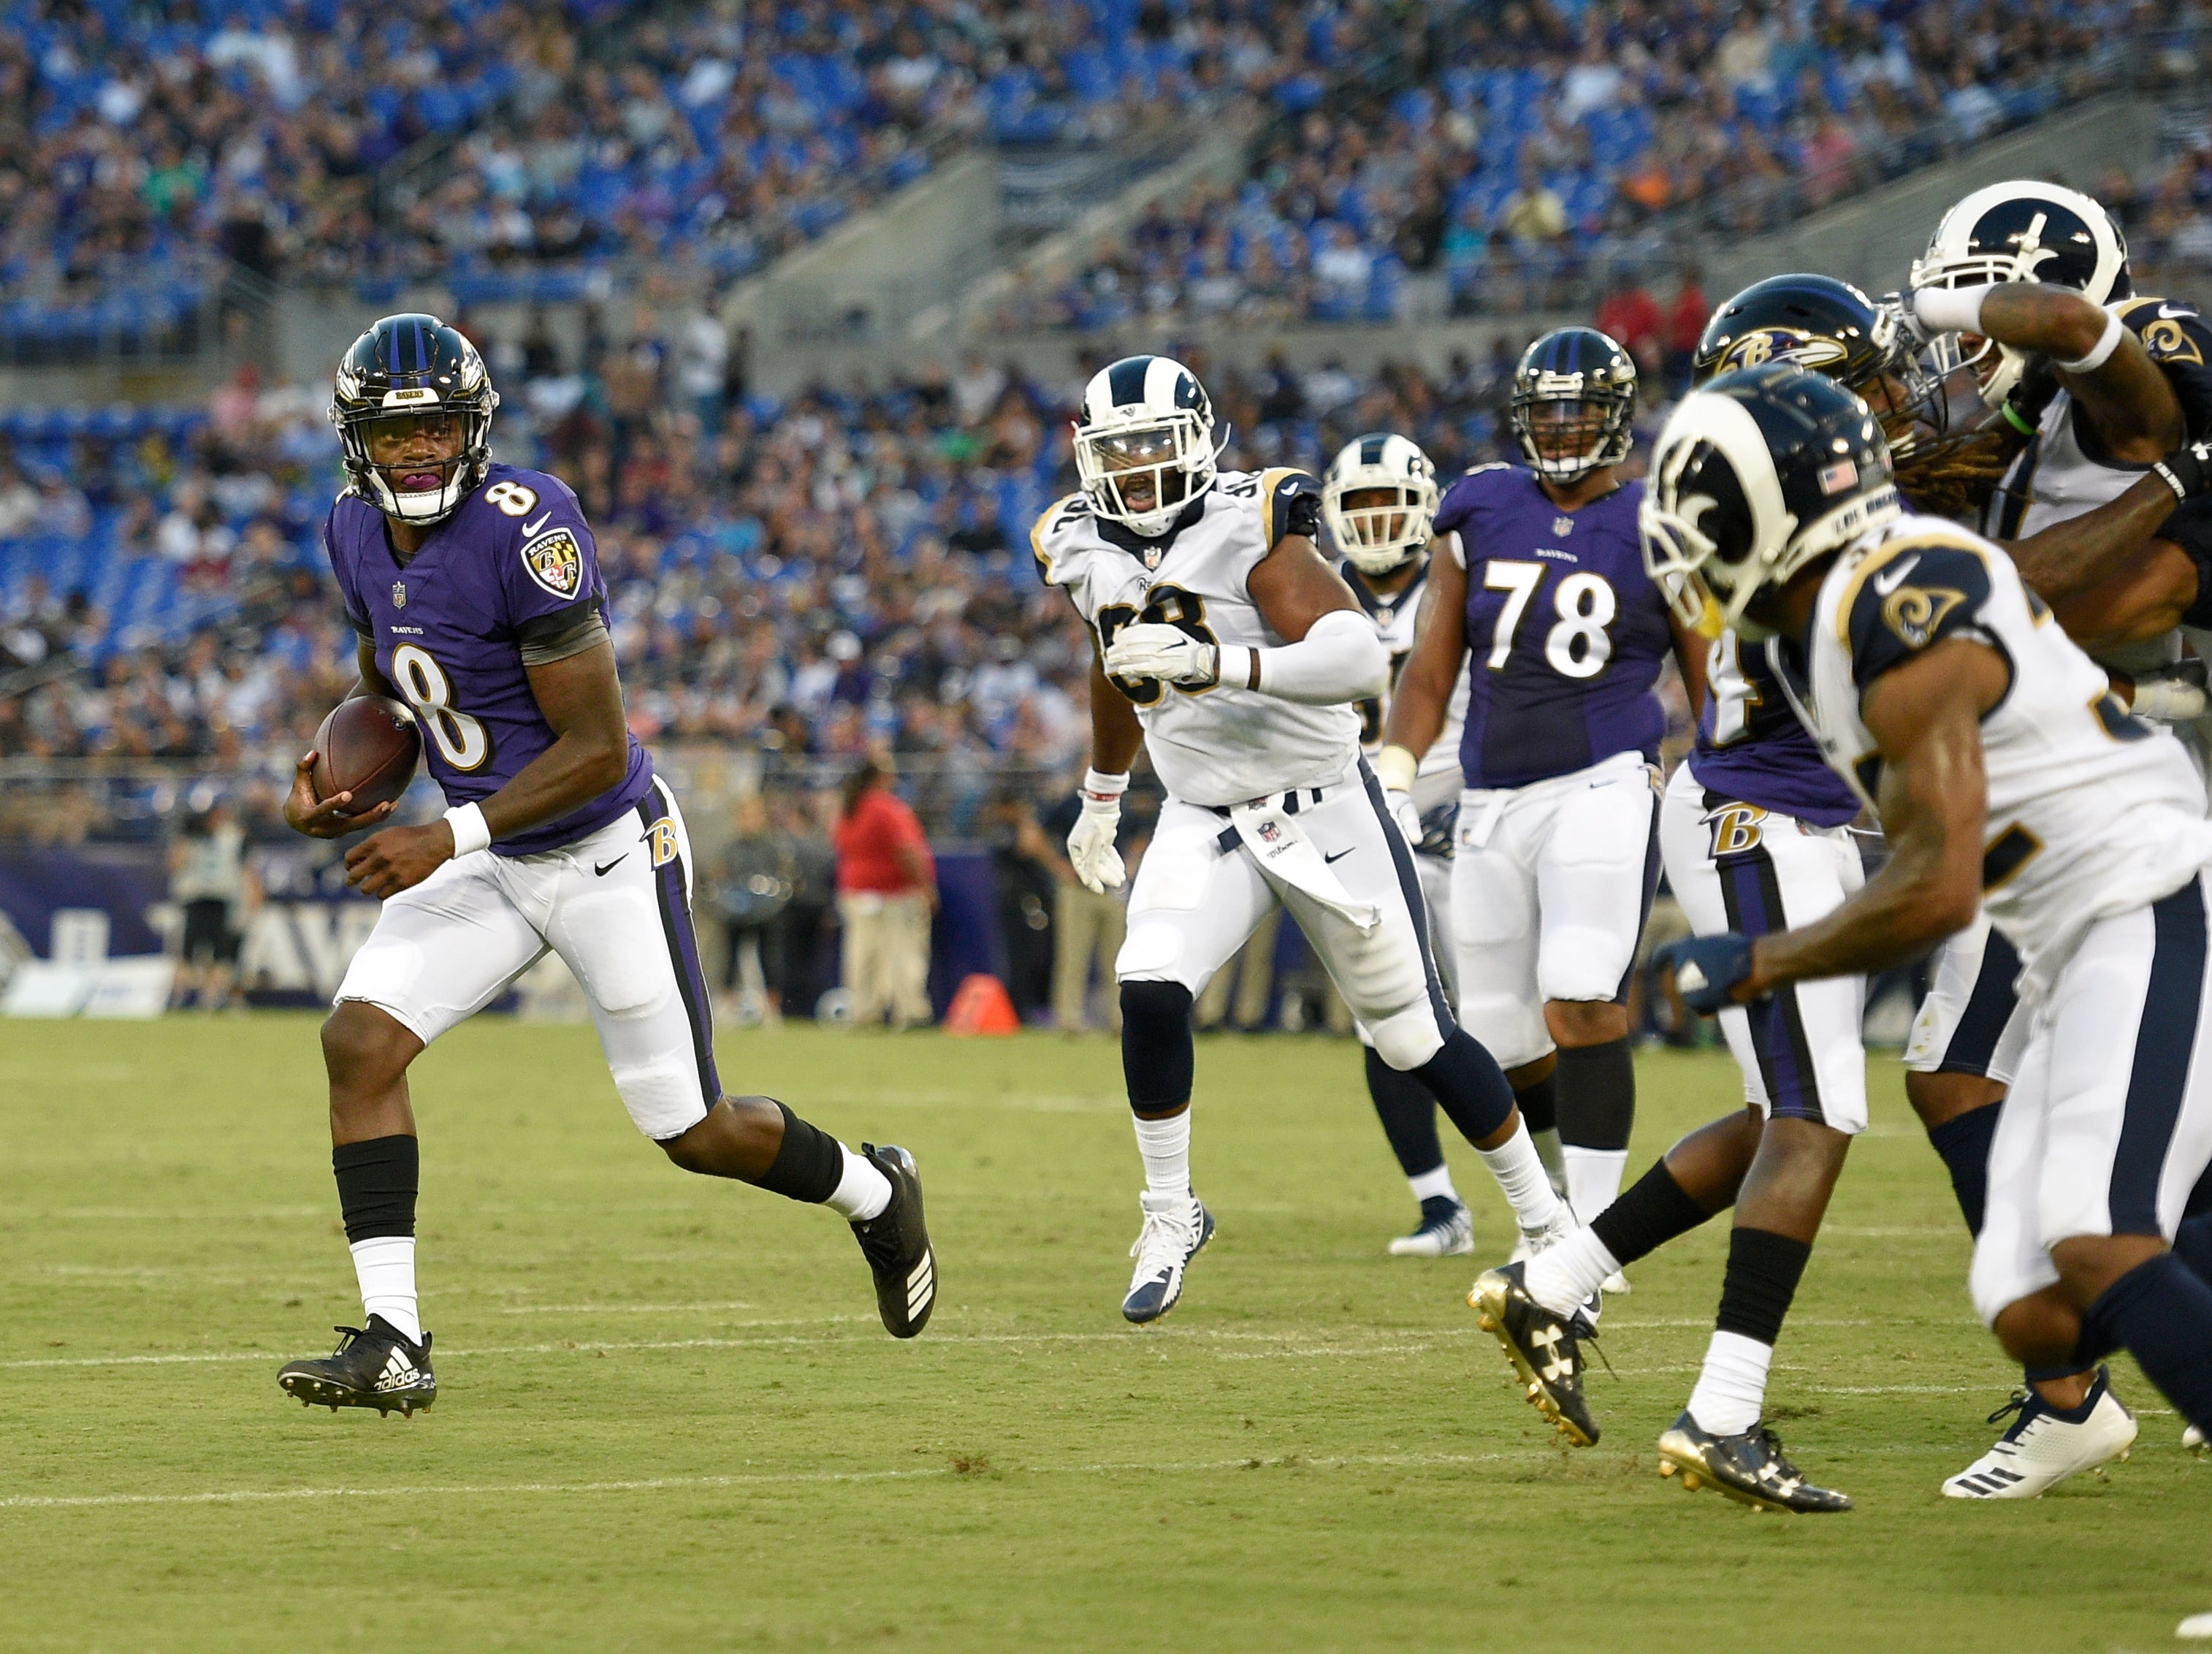 Baltimore Ravens quarterback Lamar Jackson, left, rushes for a touchdown in the first half of a preseason NFL football game against the Los Angeles Rams, Thursday, Aug. 9, 2018, in Baltimore. (AP Photo/Nick Wass)